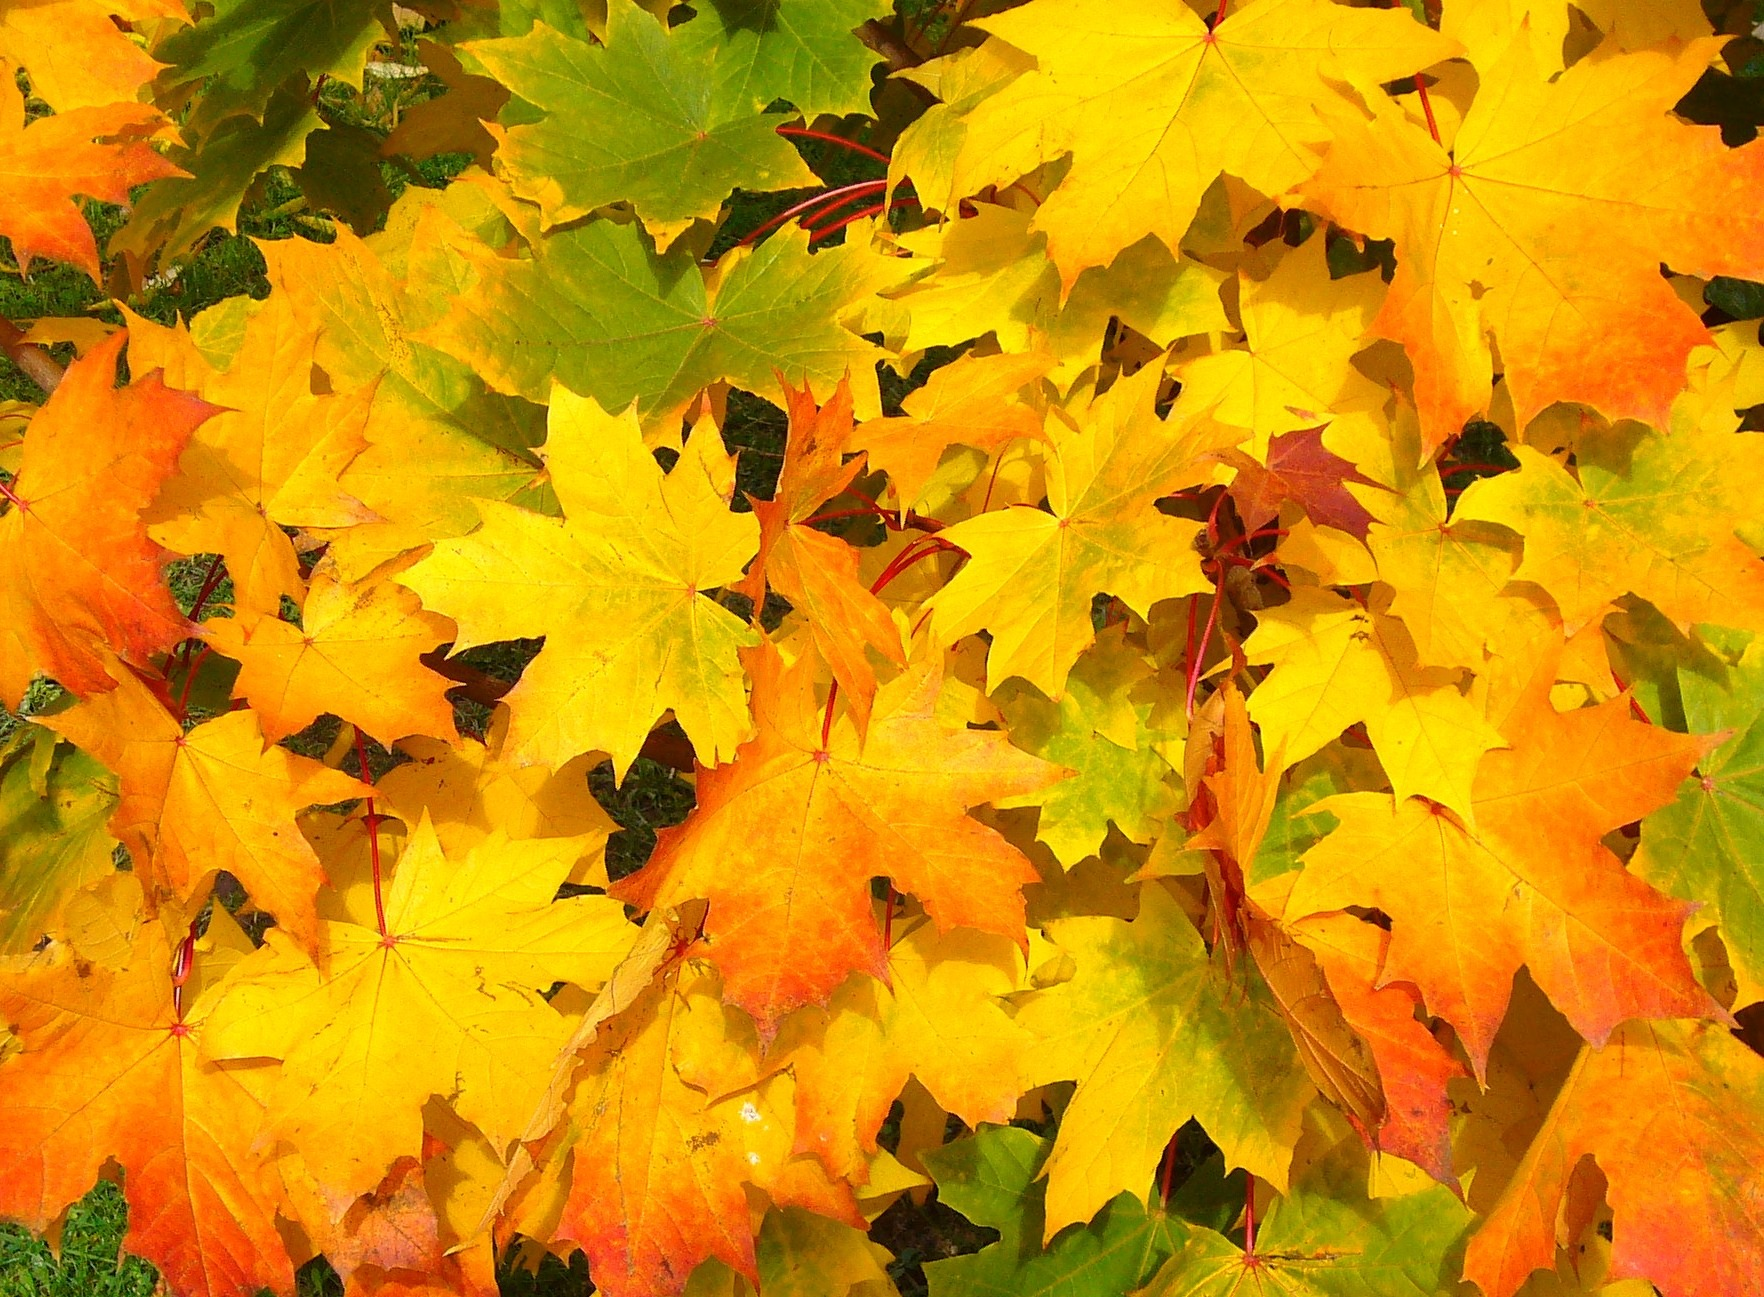 Orange and brown leaves autumn fall colorful yellow